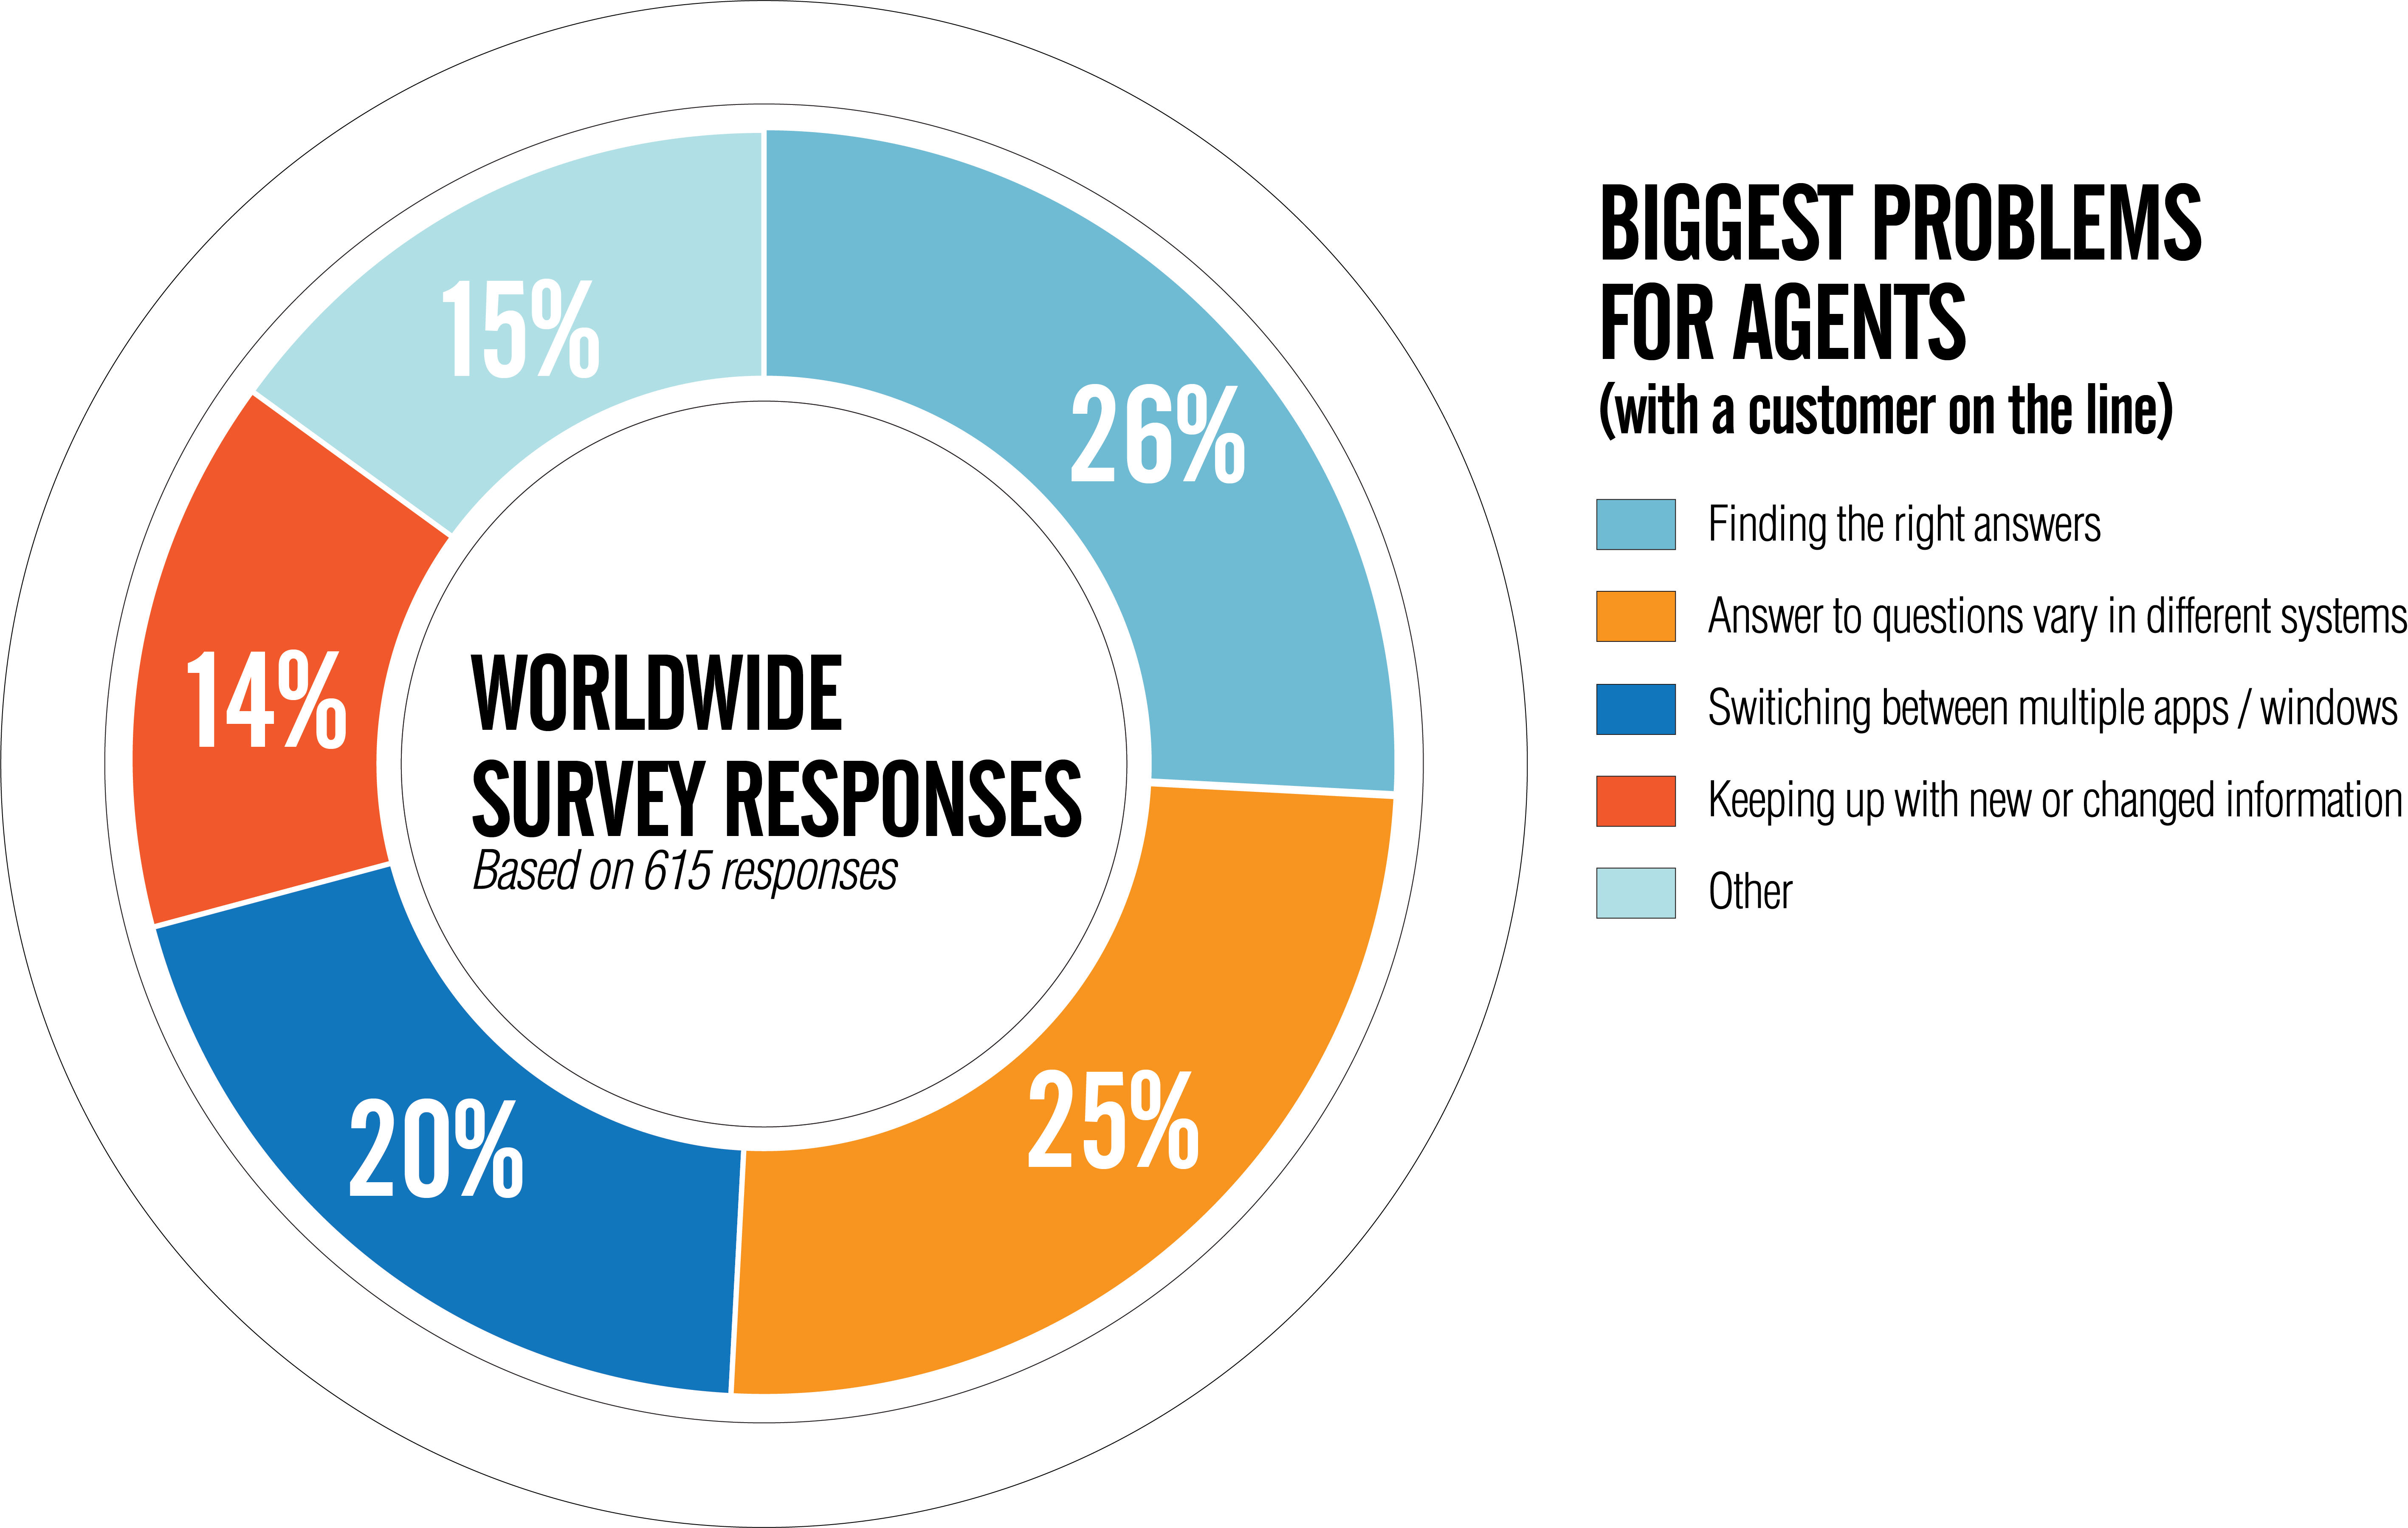 Pie chart of the biggest problems that agents face when a customer is on the line